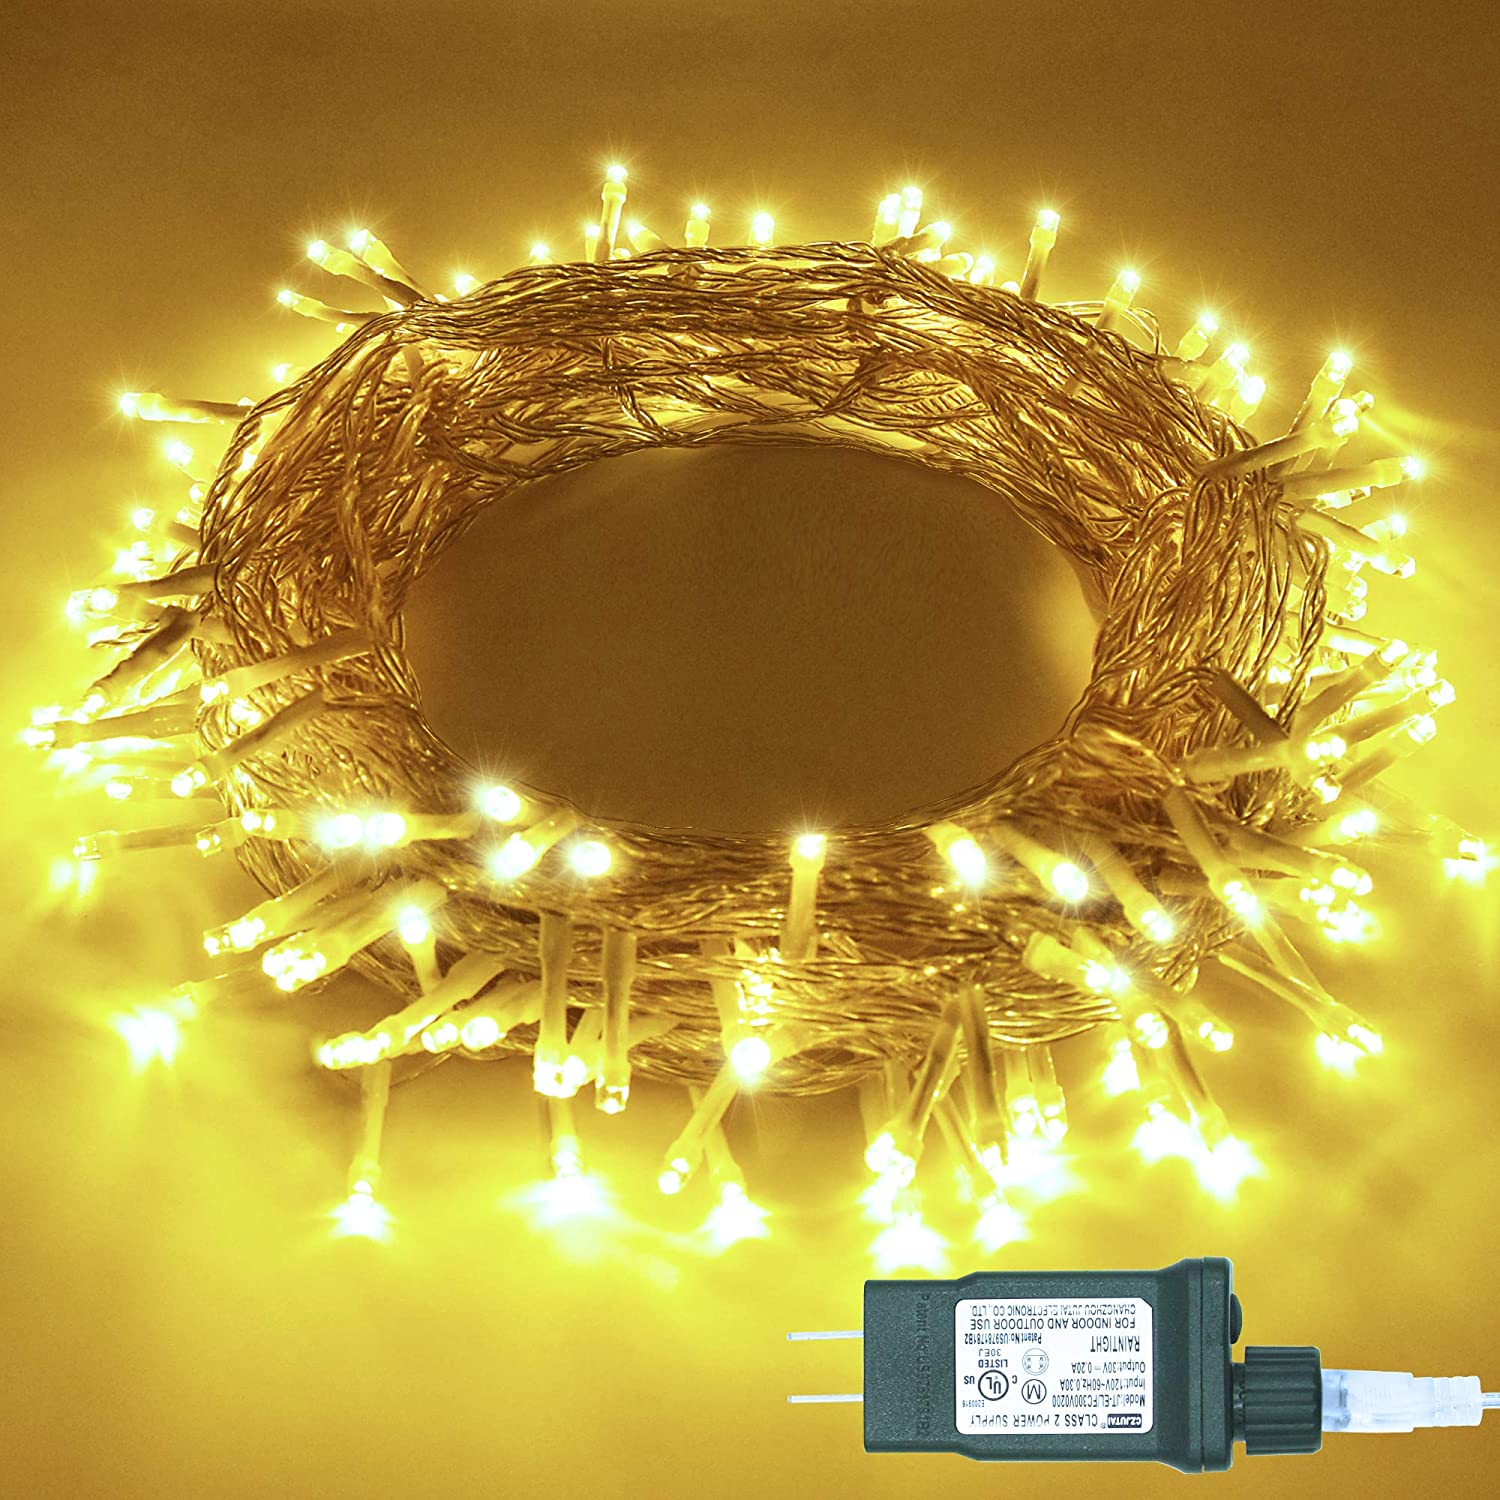 KNONEW LED String Light 33ft 100 LED Indoor Outdoor Fairy String Lights 8 Lighting Modes for Christmas Thanksgiving Halloween Wedding Birthday Party Home Bedroom Tree Decorations (Warm White)